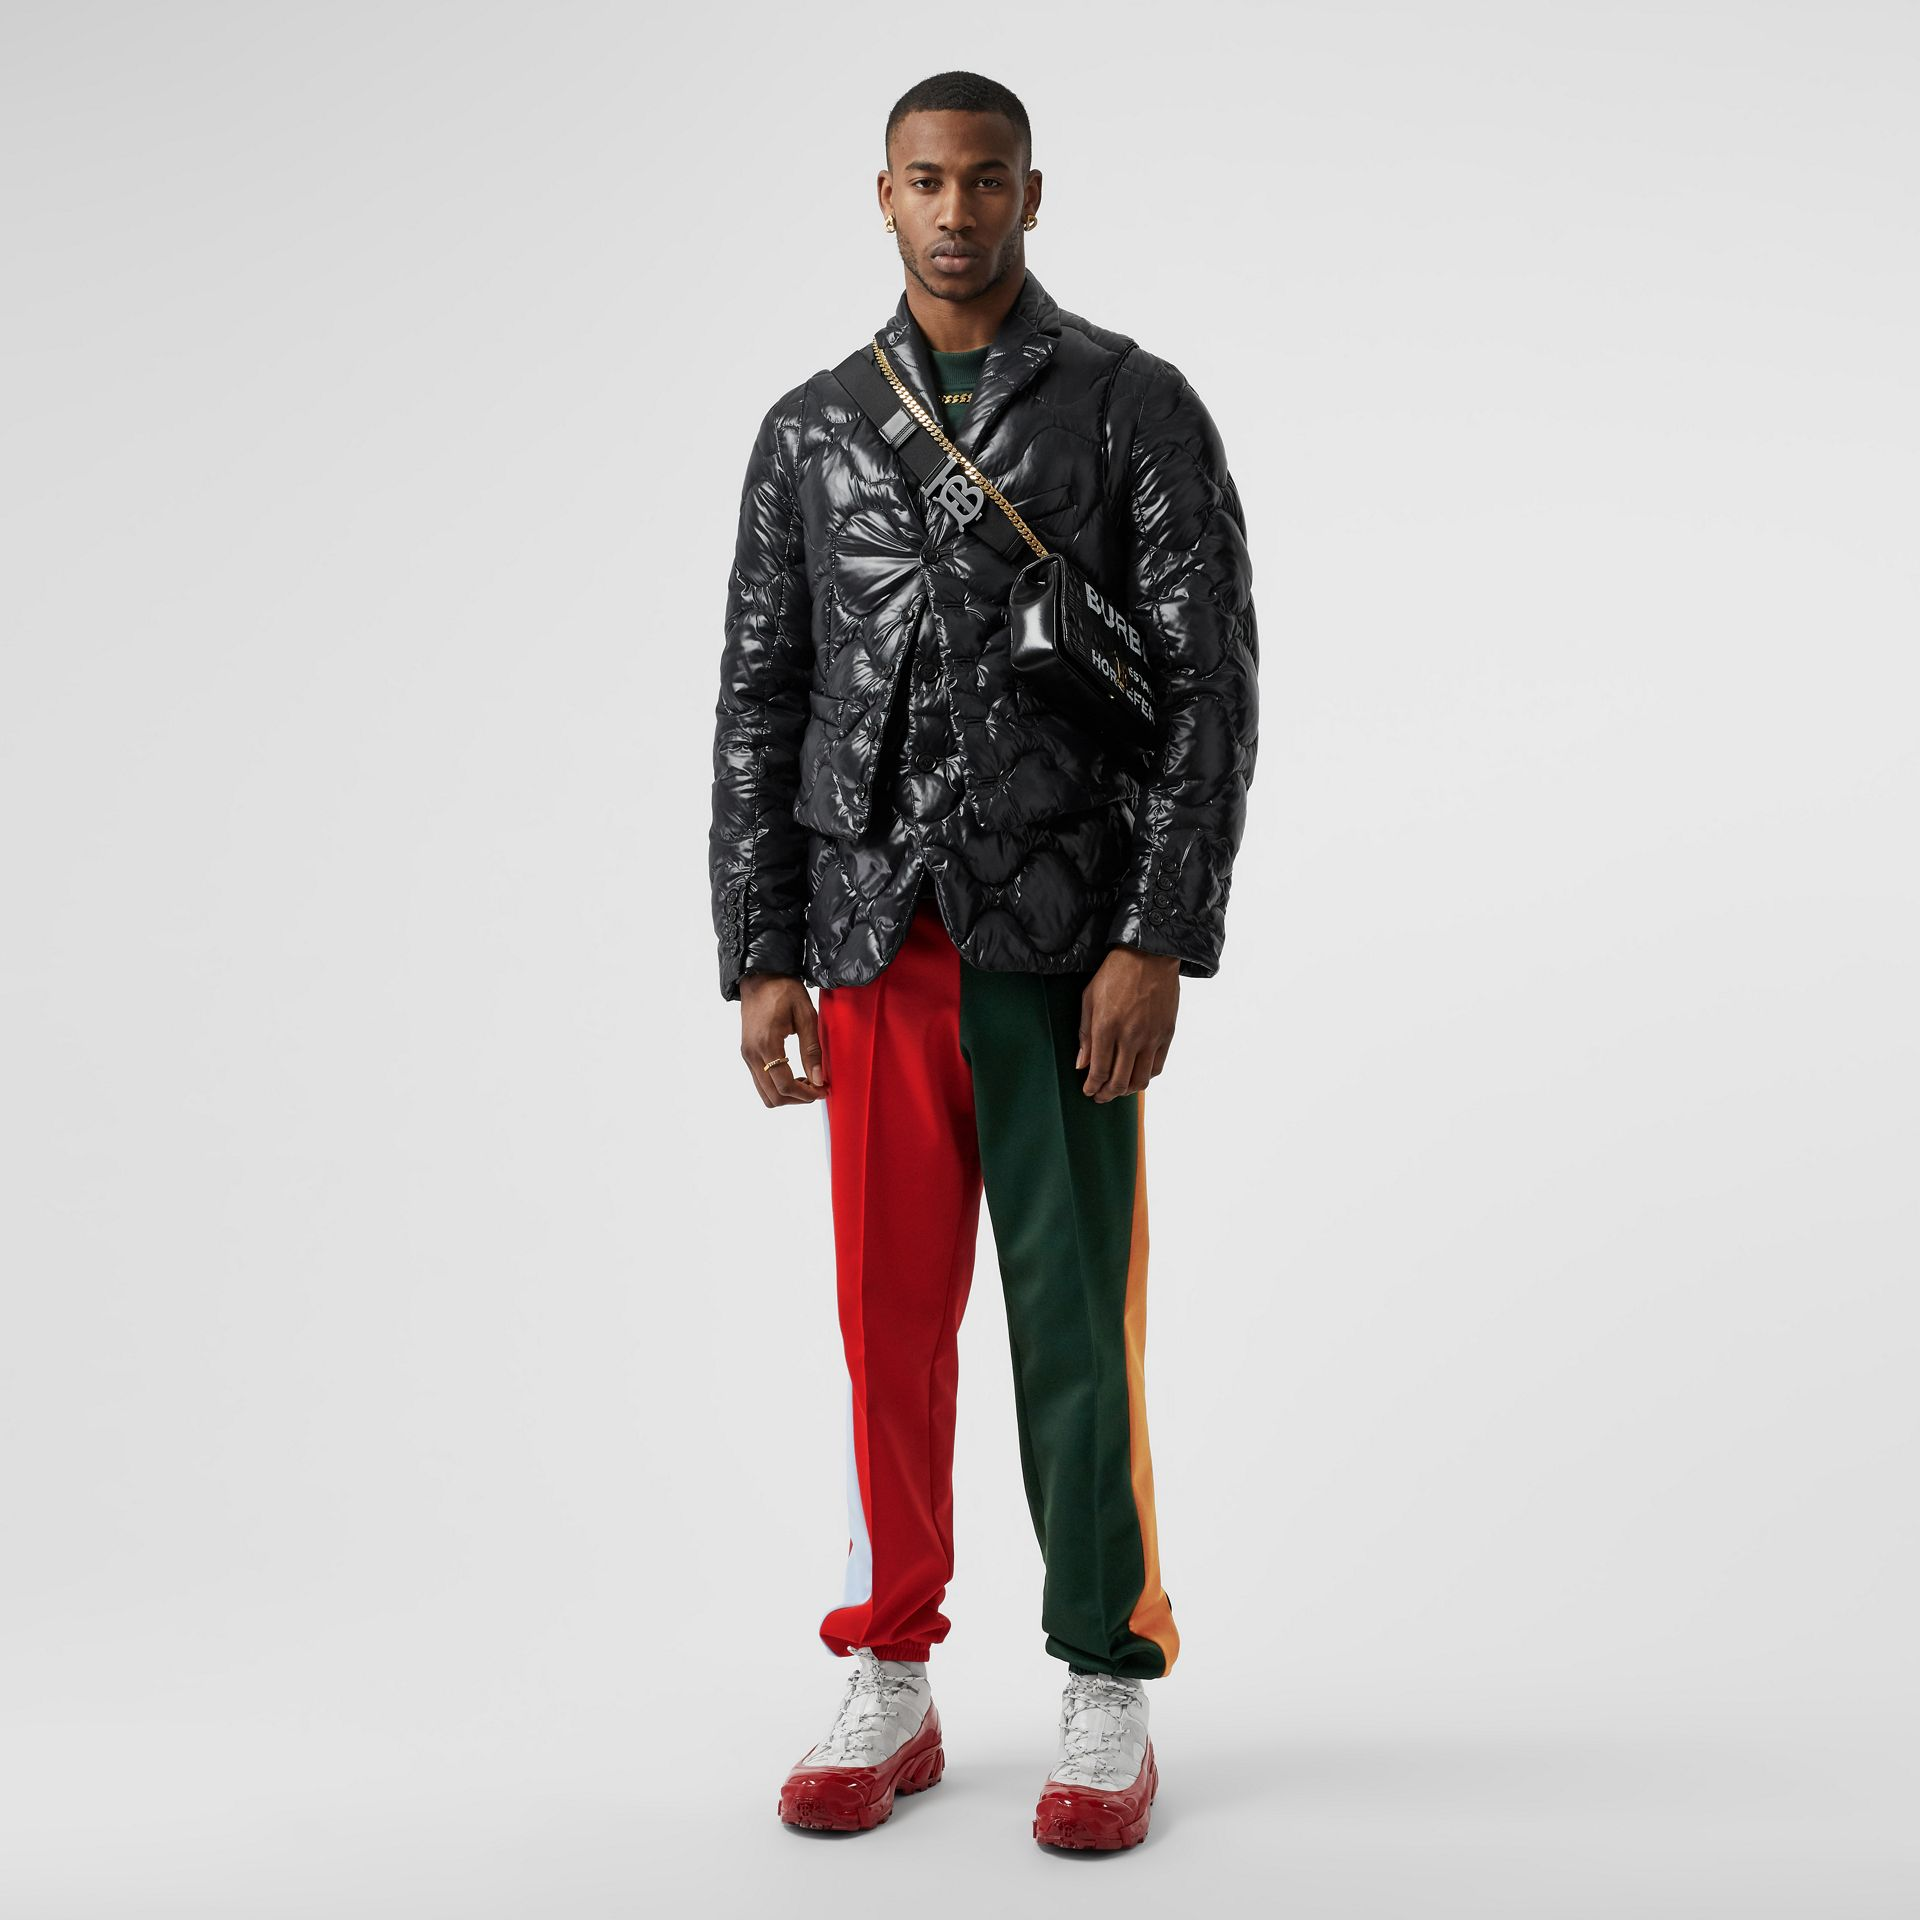 Pantalon de survêtement en jersey color-block avec logo (Vert Pin Sombre) - Homme | Burberry - photo de la galerie 0